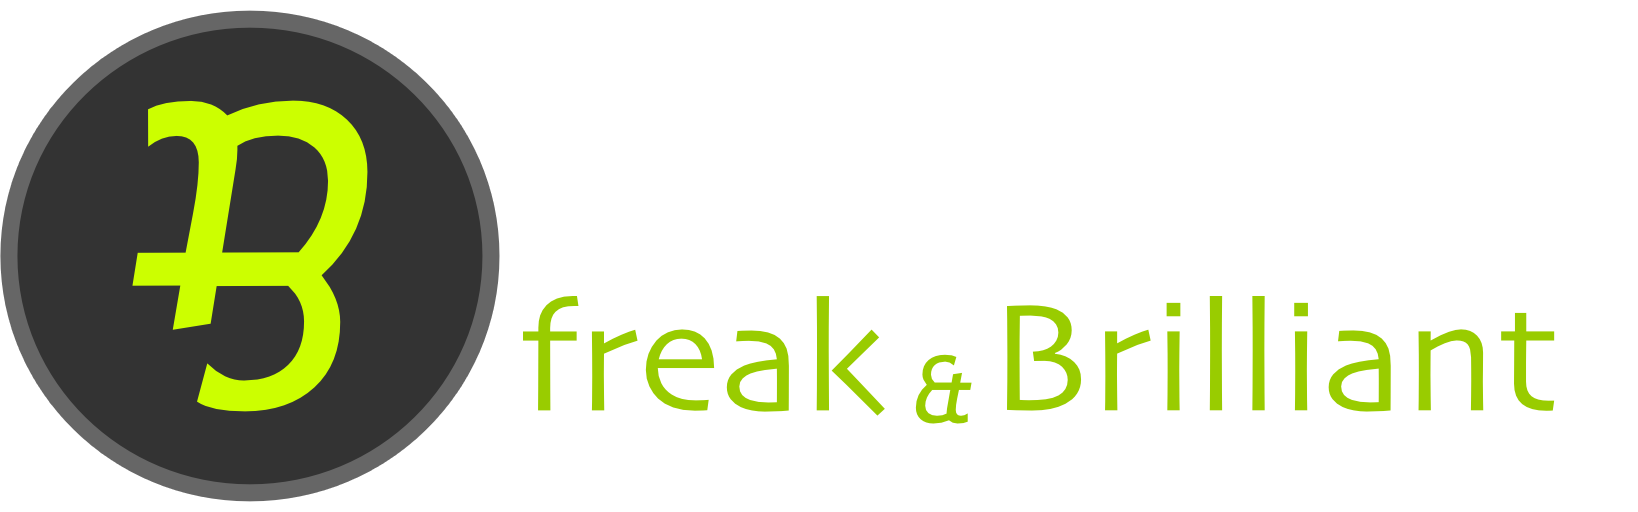 Freak and Brilliant